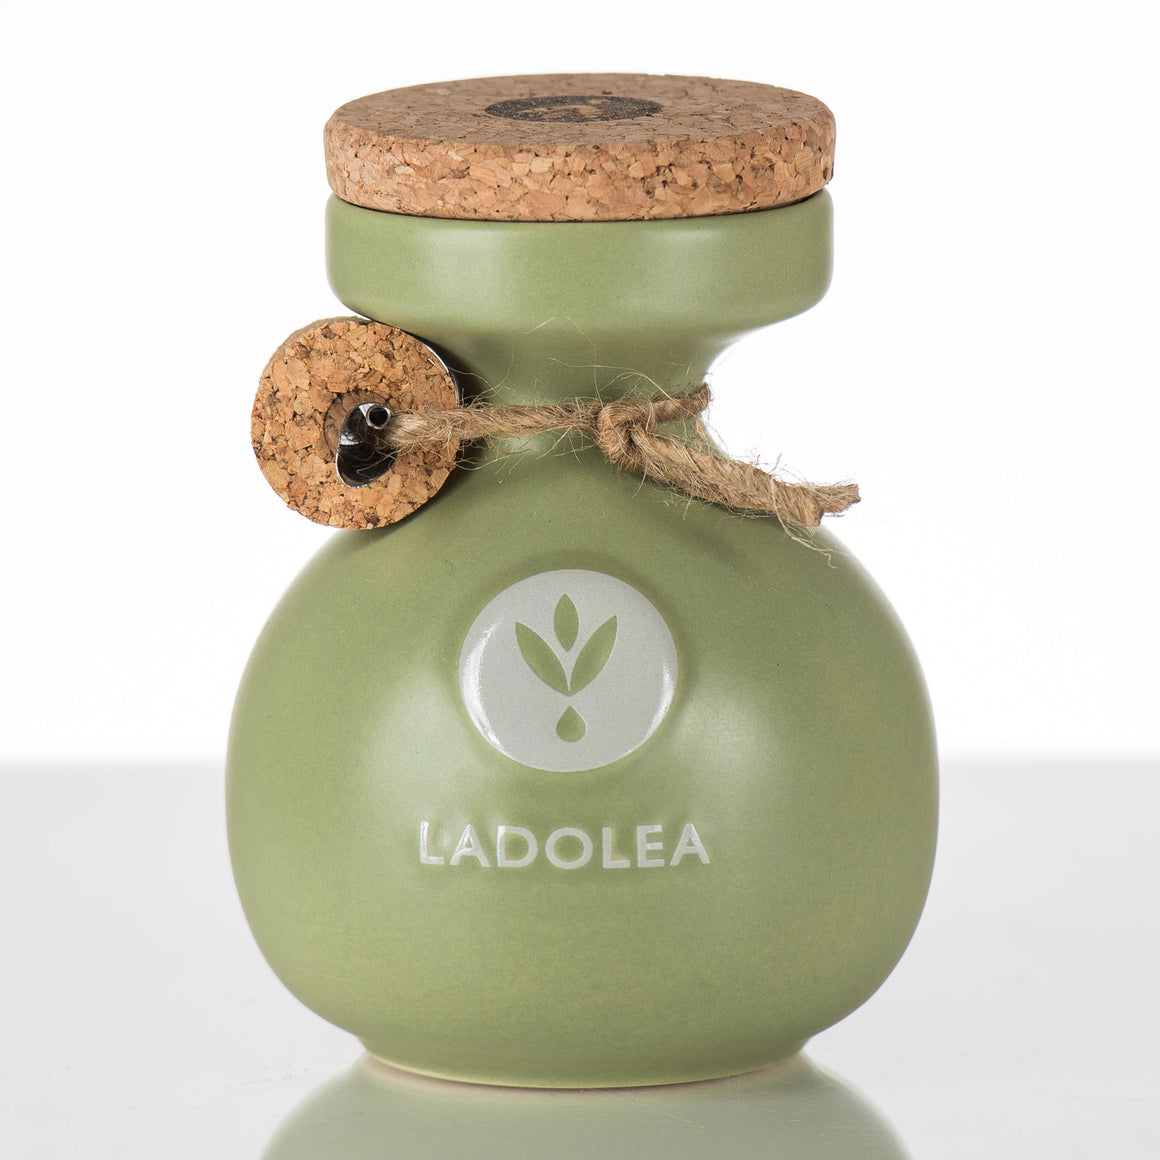 Ladolea Organic Greek Extra Virgin Olive Oil in a traditional Green Ceramic Pot - 200ml